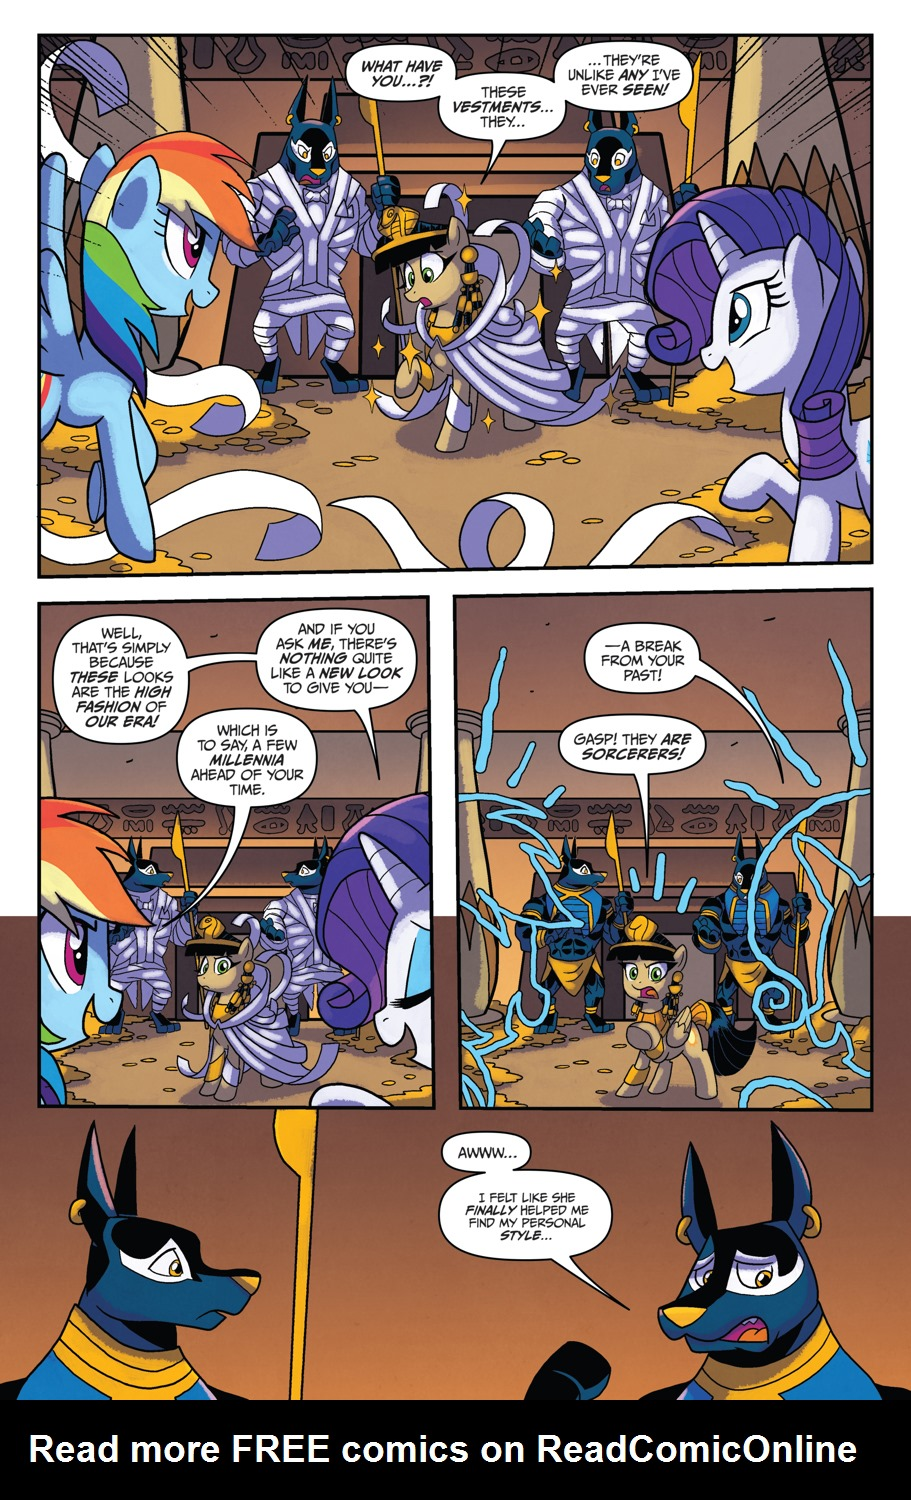 Read online My Little Pony: Friendship is Magic comic -  Issue #53 - 15